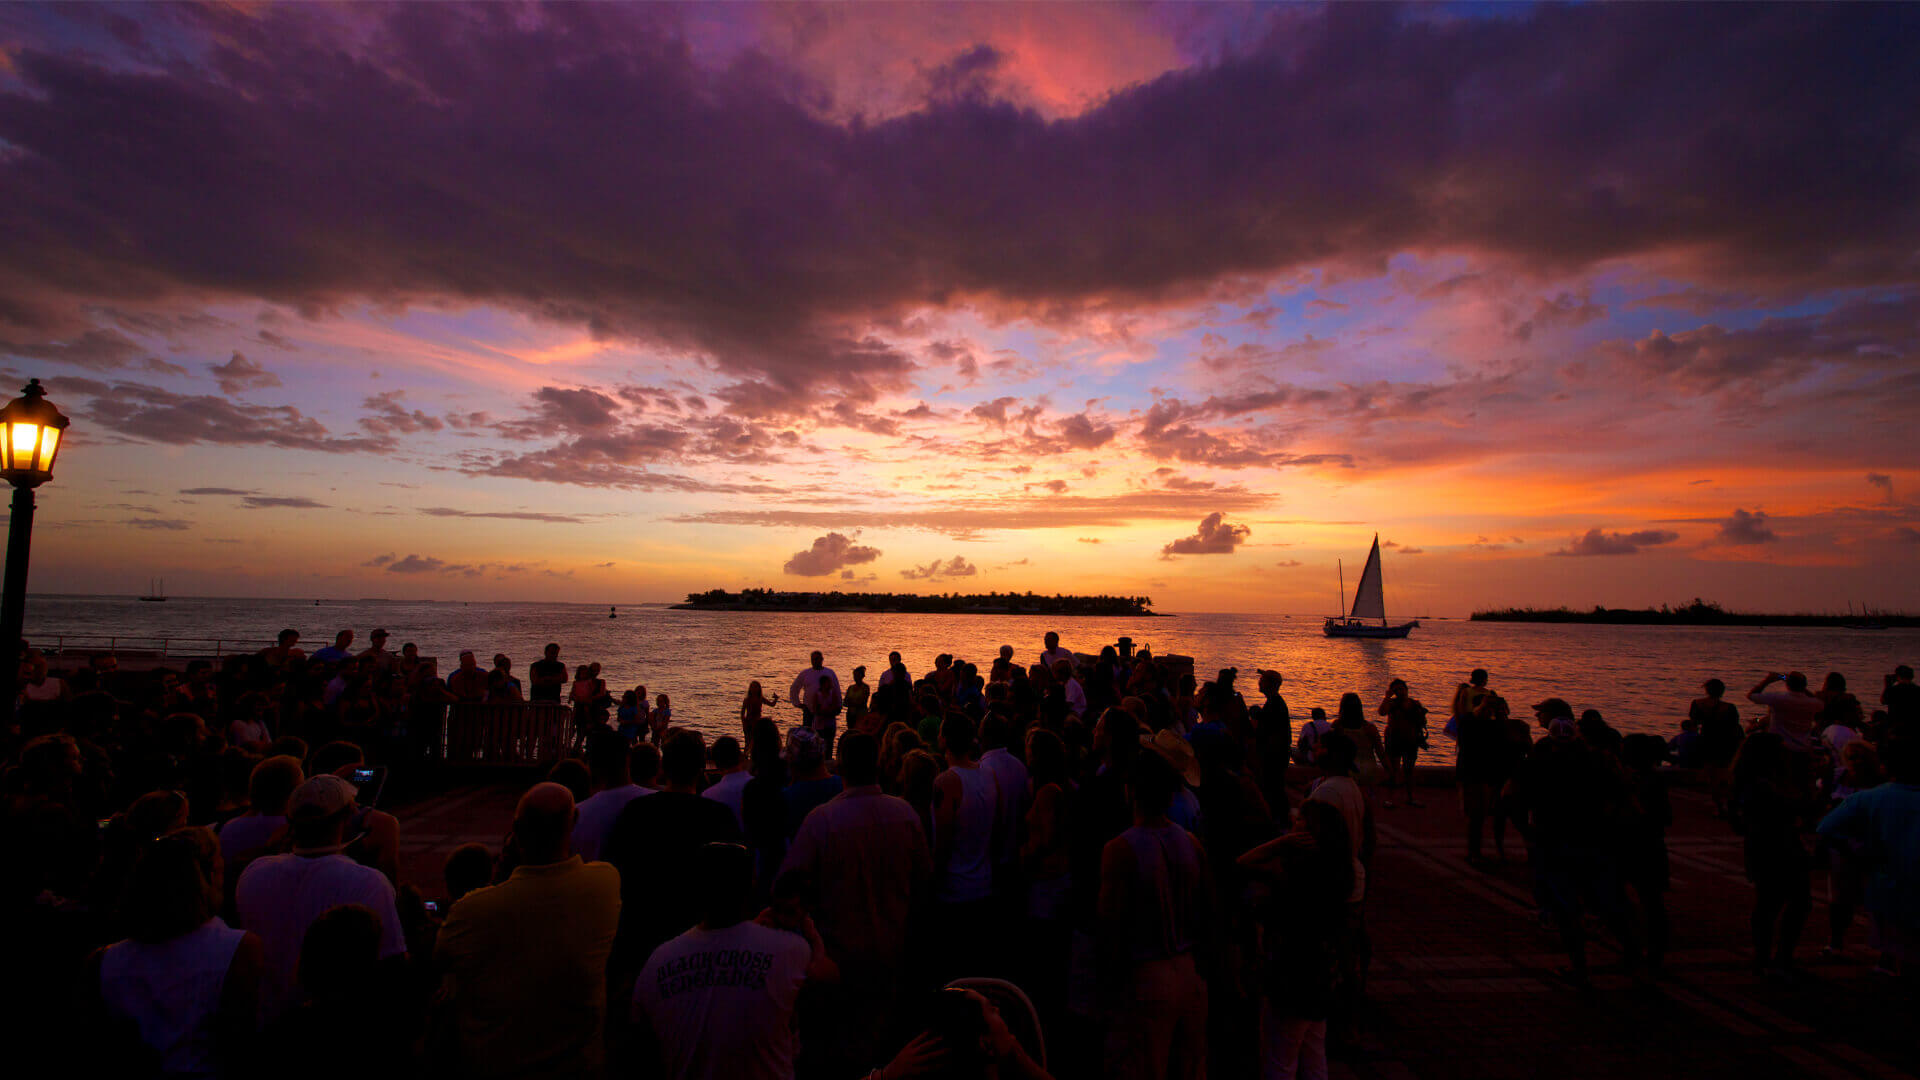 sunset celebration in mallory square key west